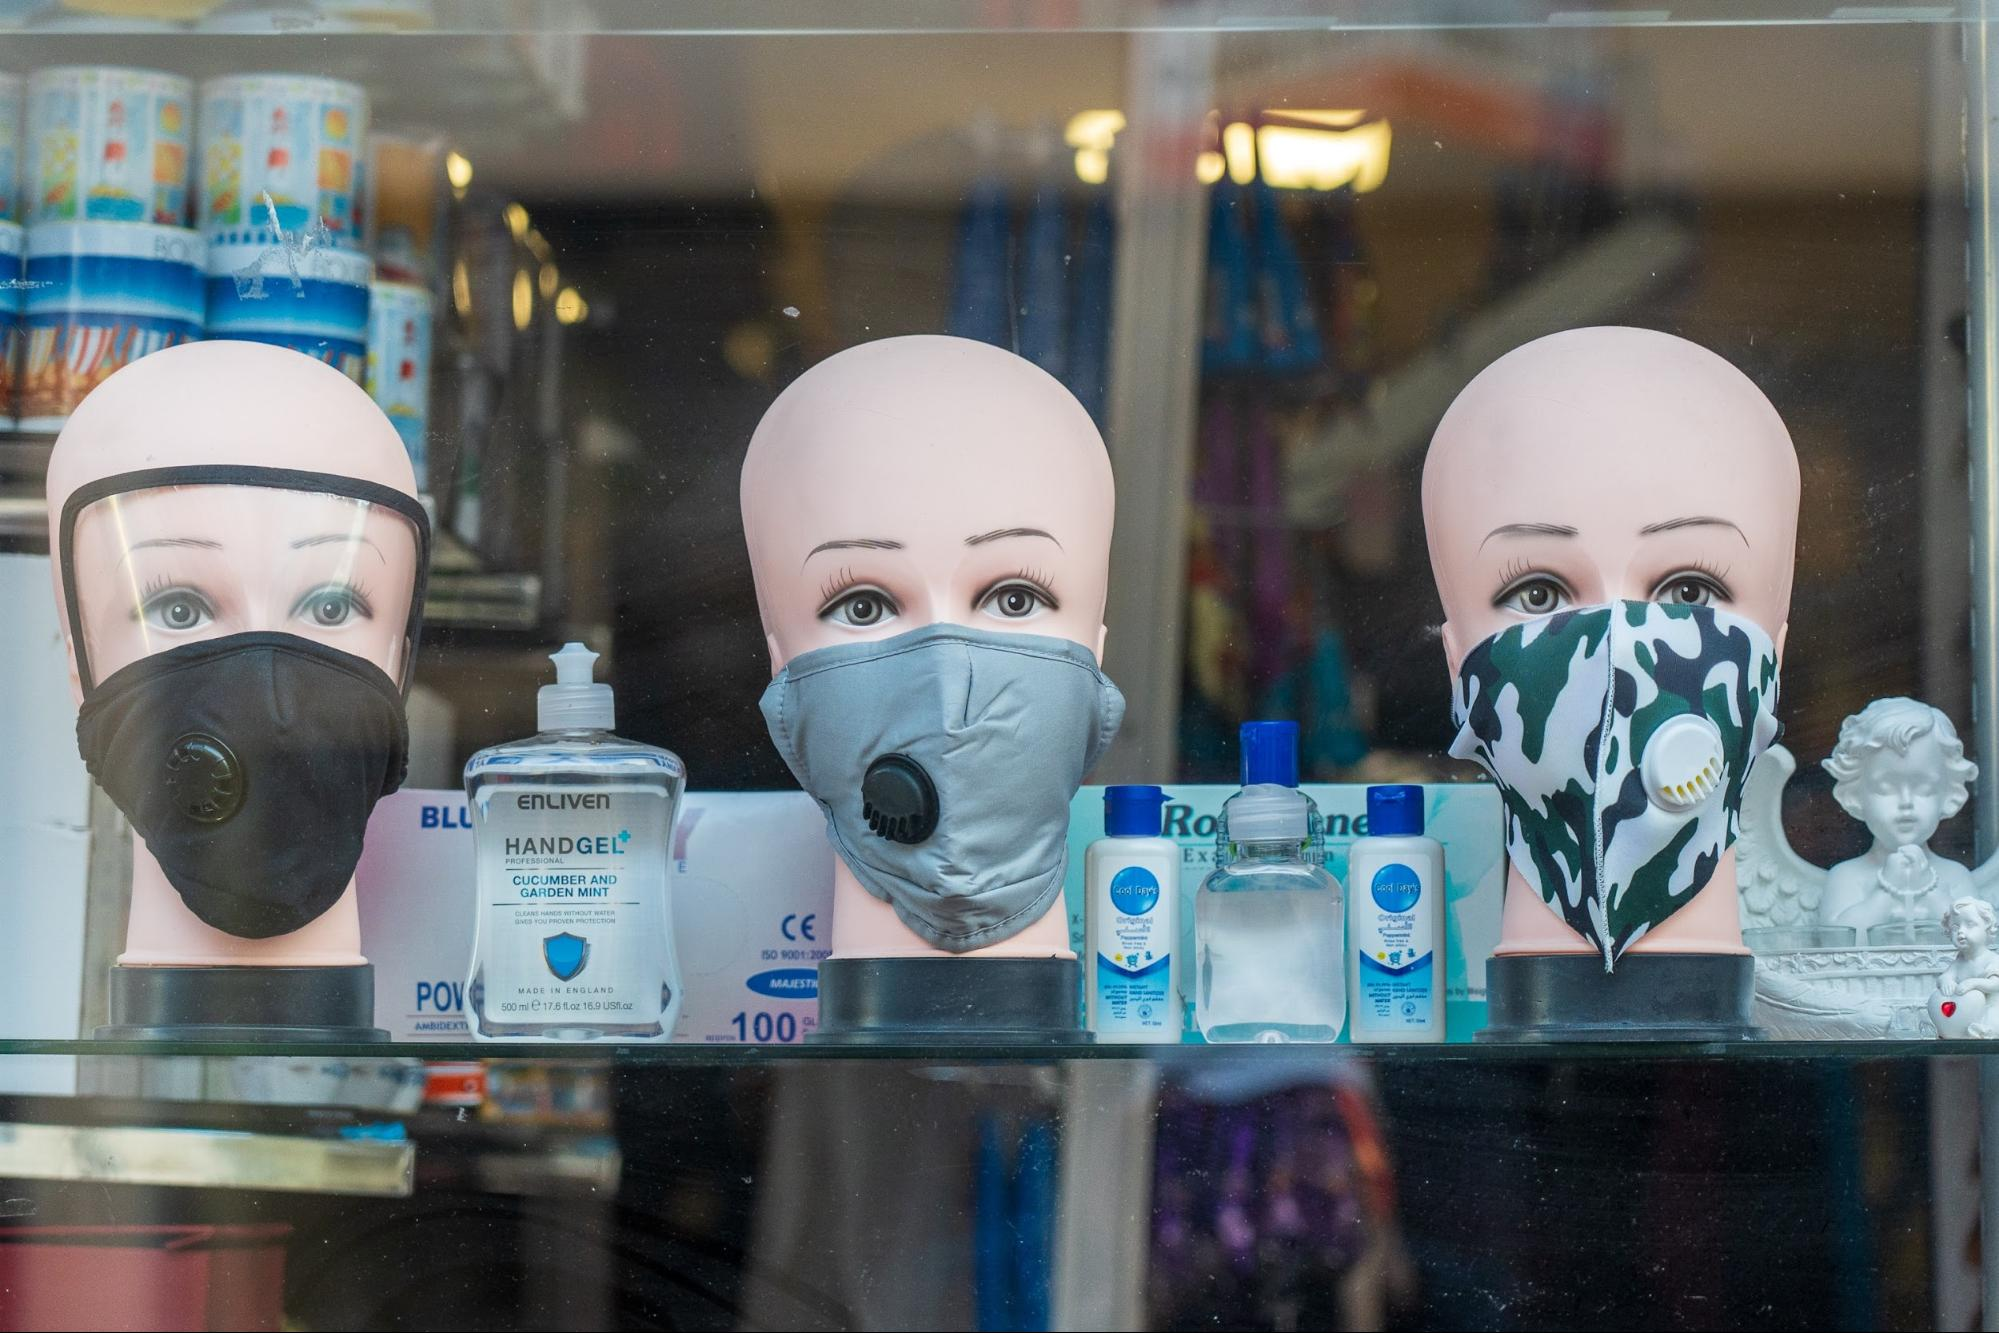 A display of masks and hand sanitizers